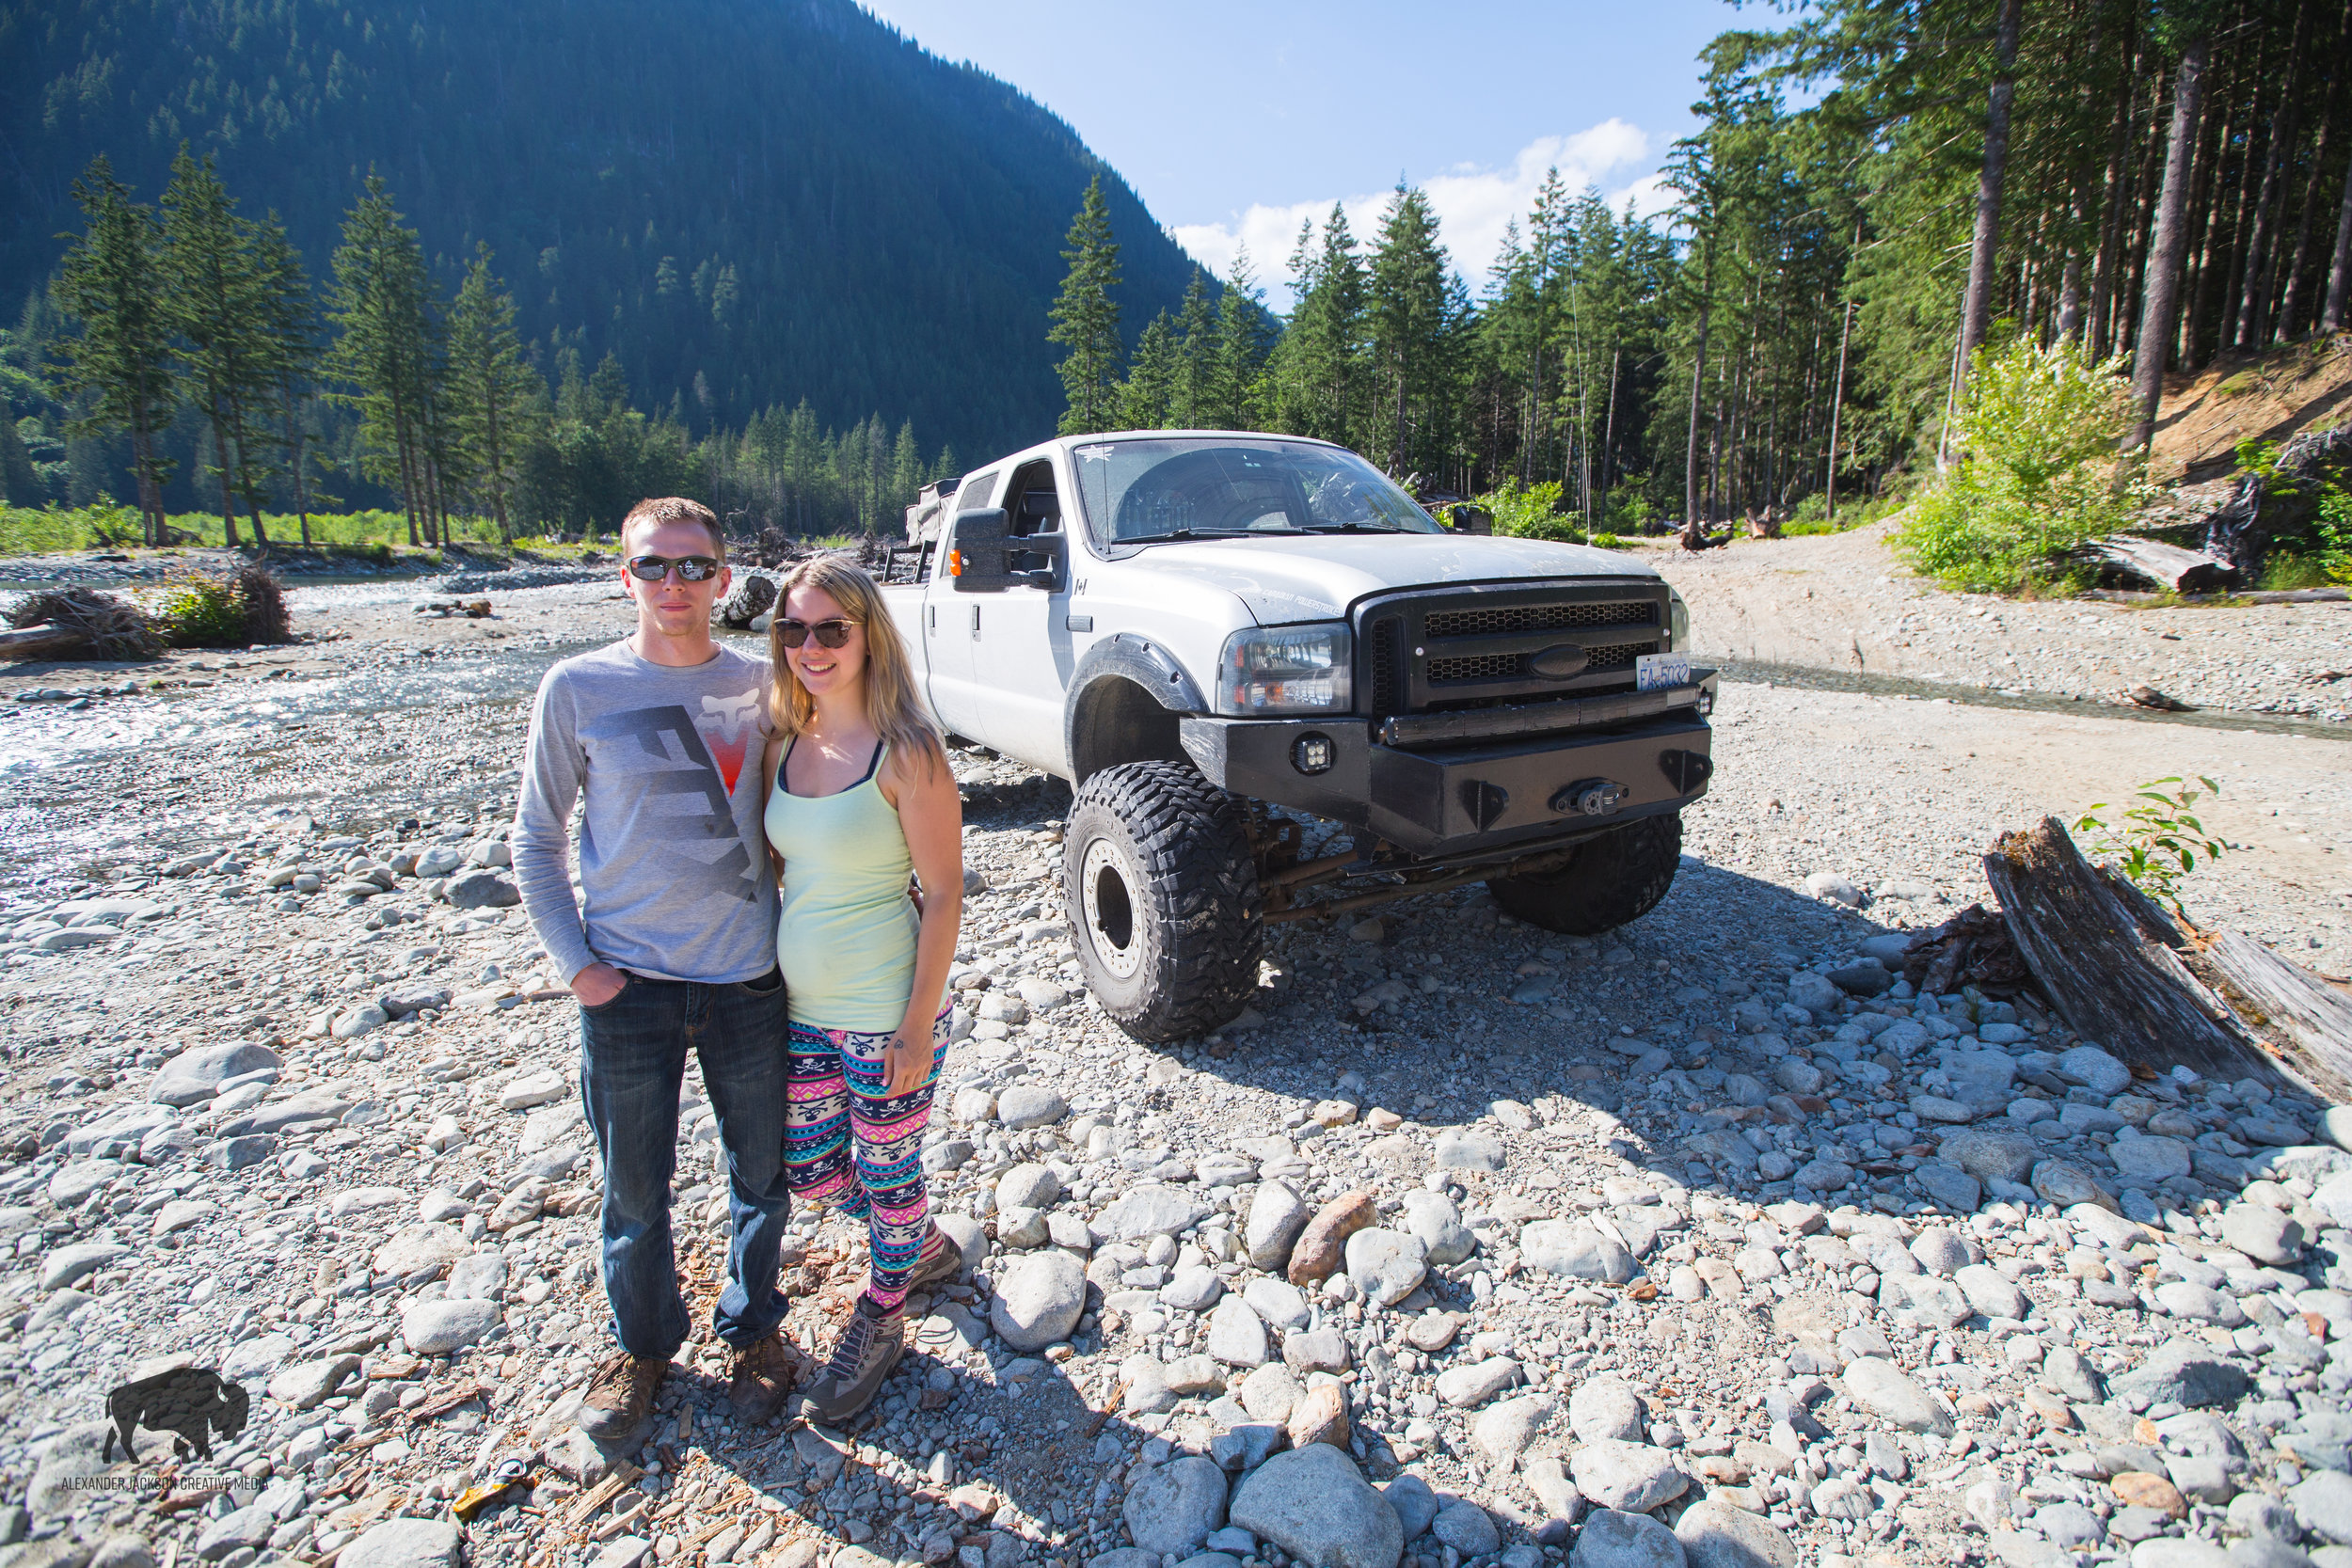 Cass and Brooklyn with their monstrous Ford Super Duty.